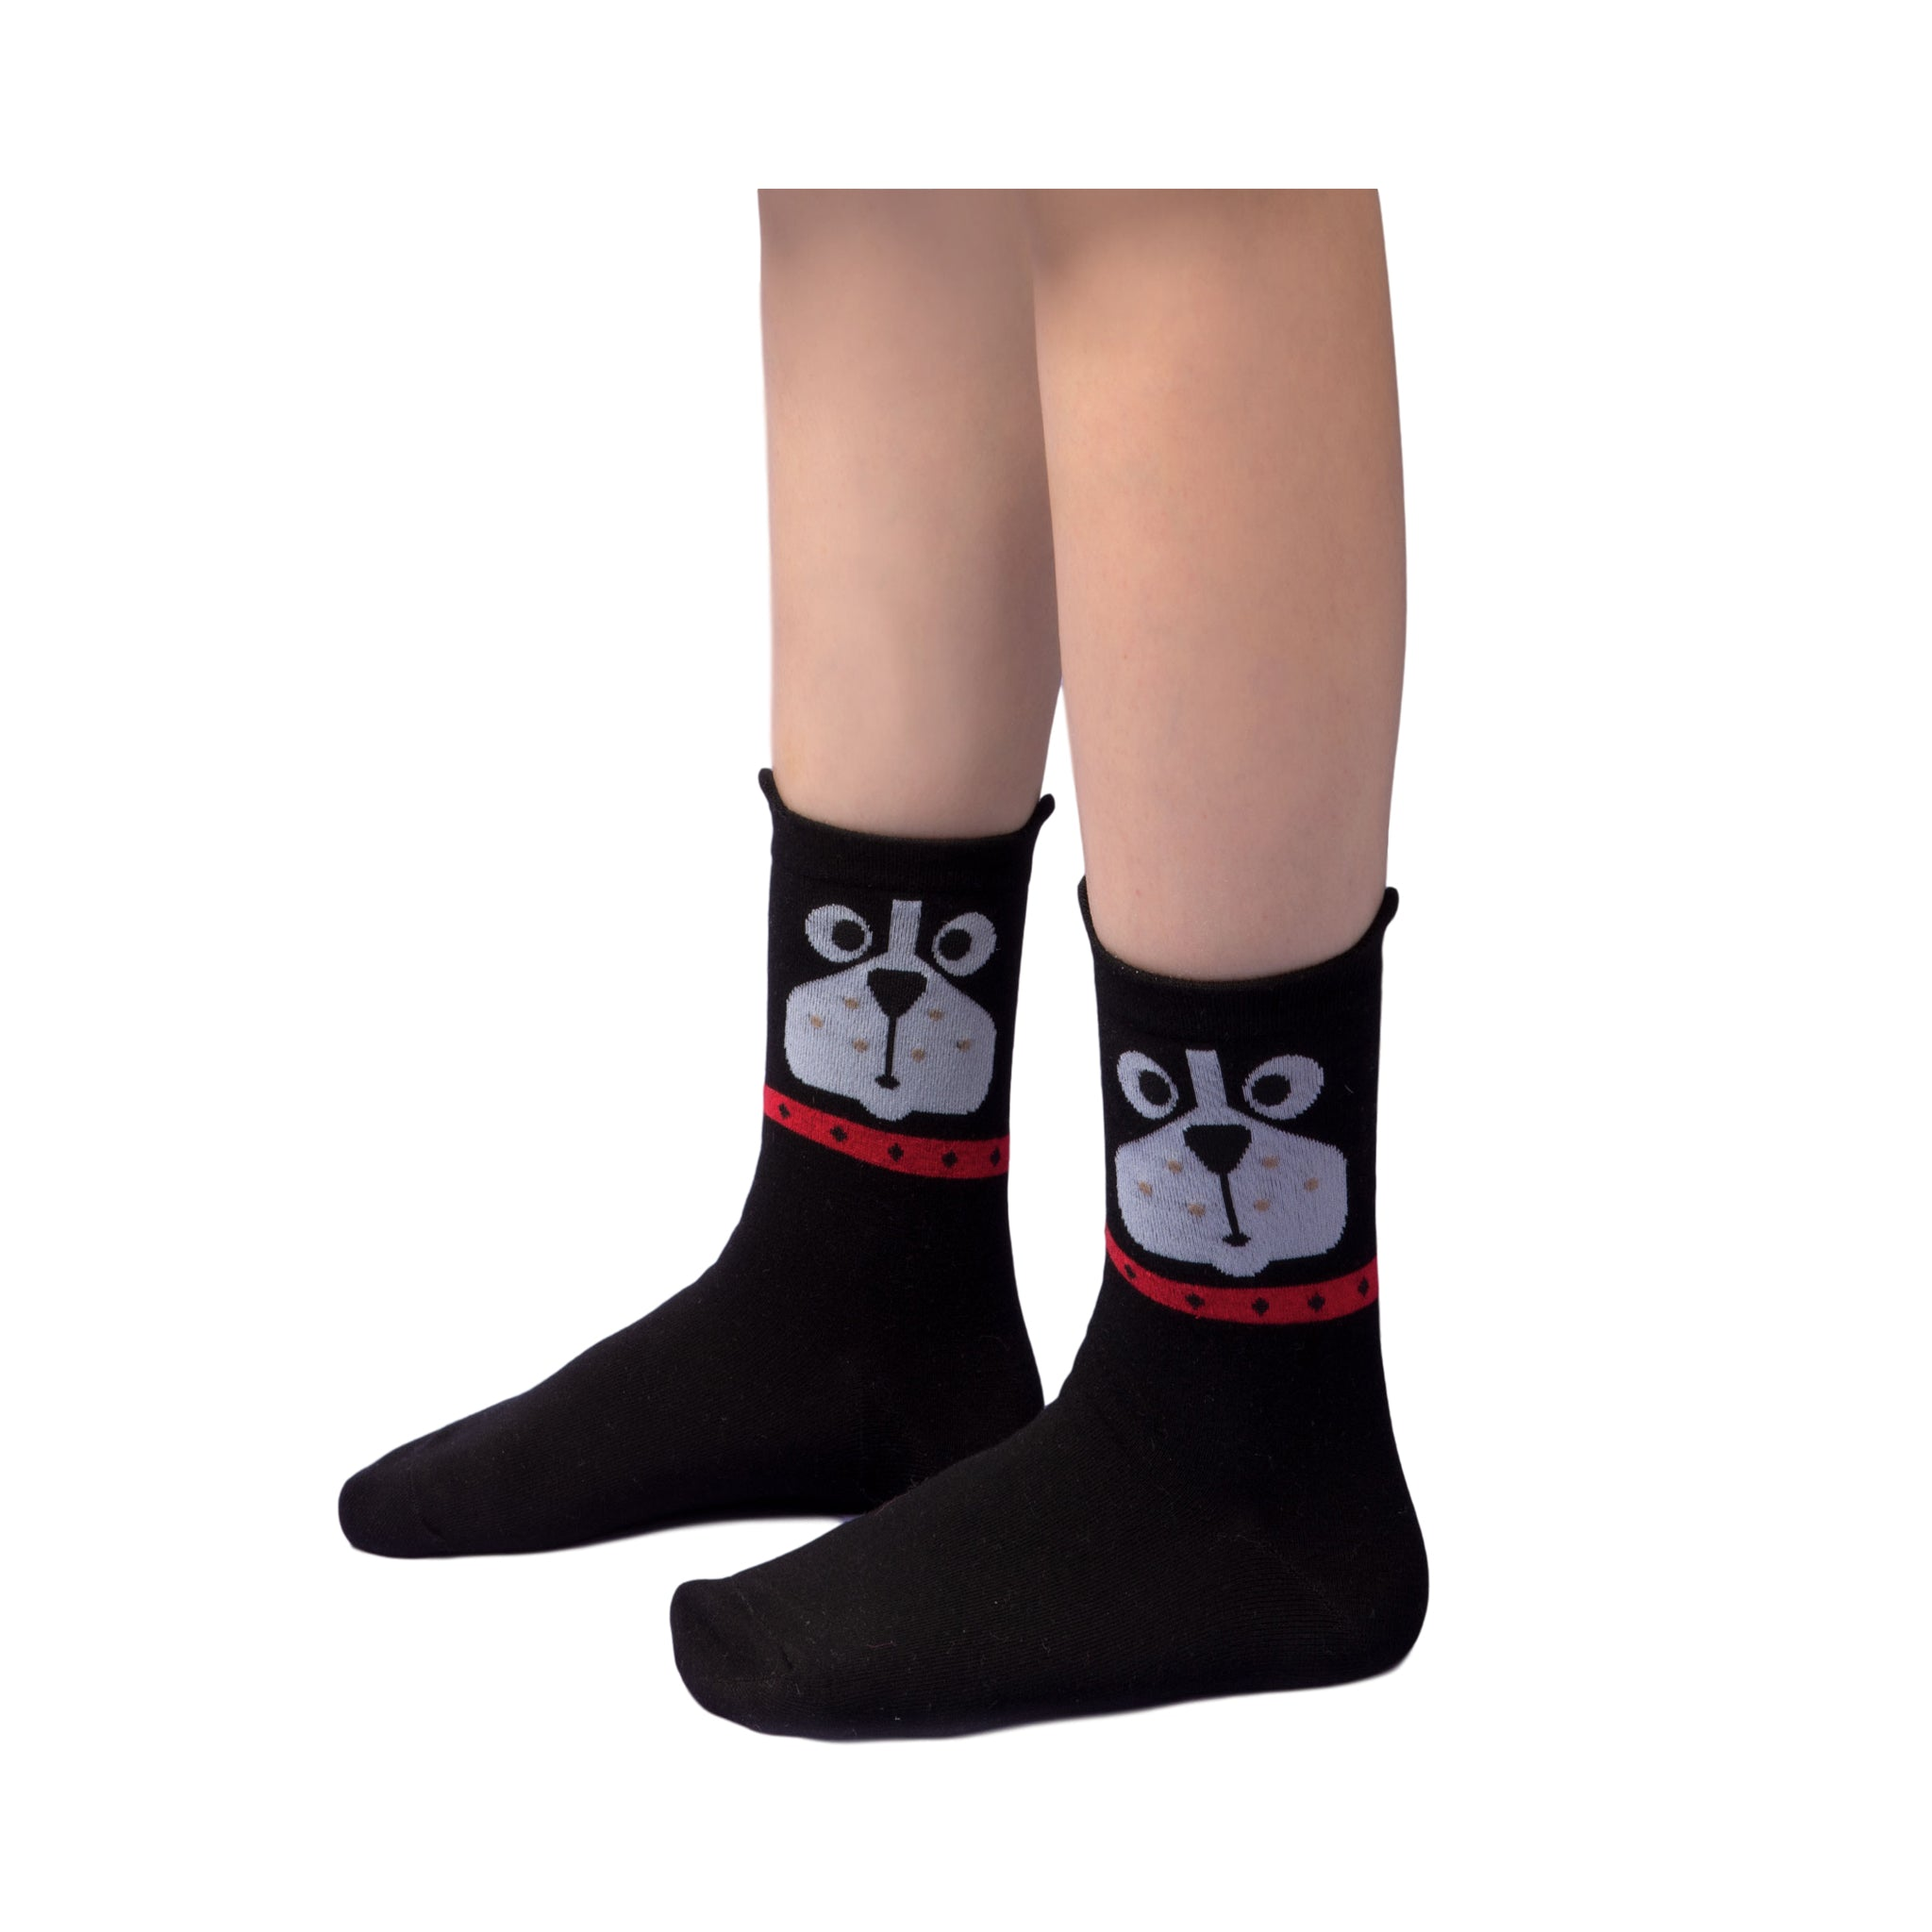 Dog Puppy Socks for Women Girls Teen (5 Pair Set)